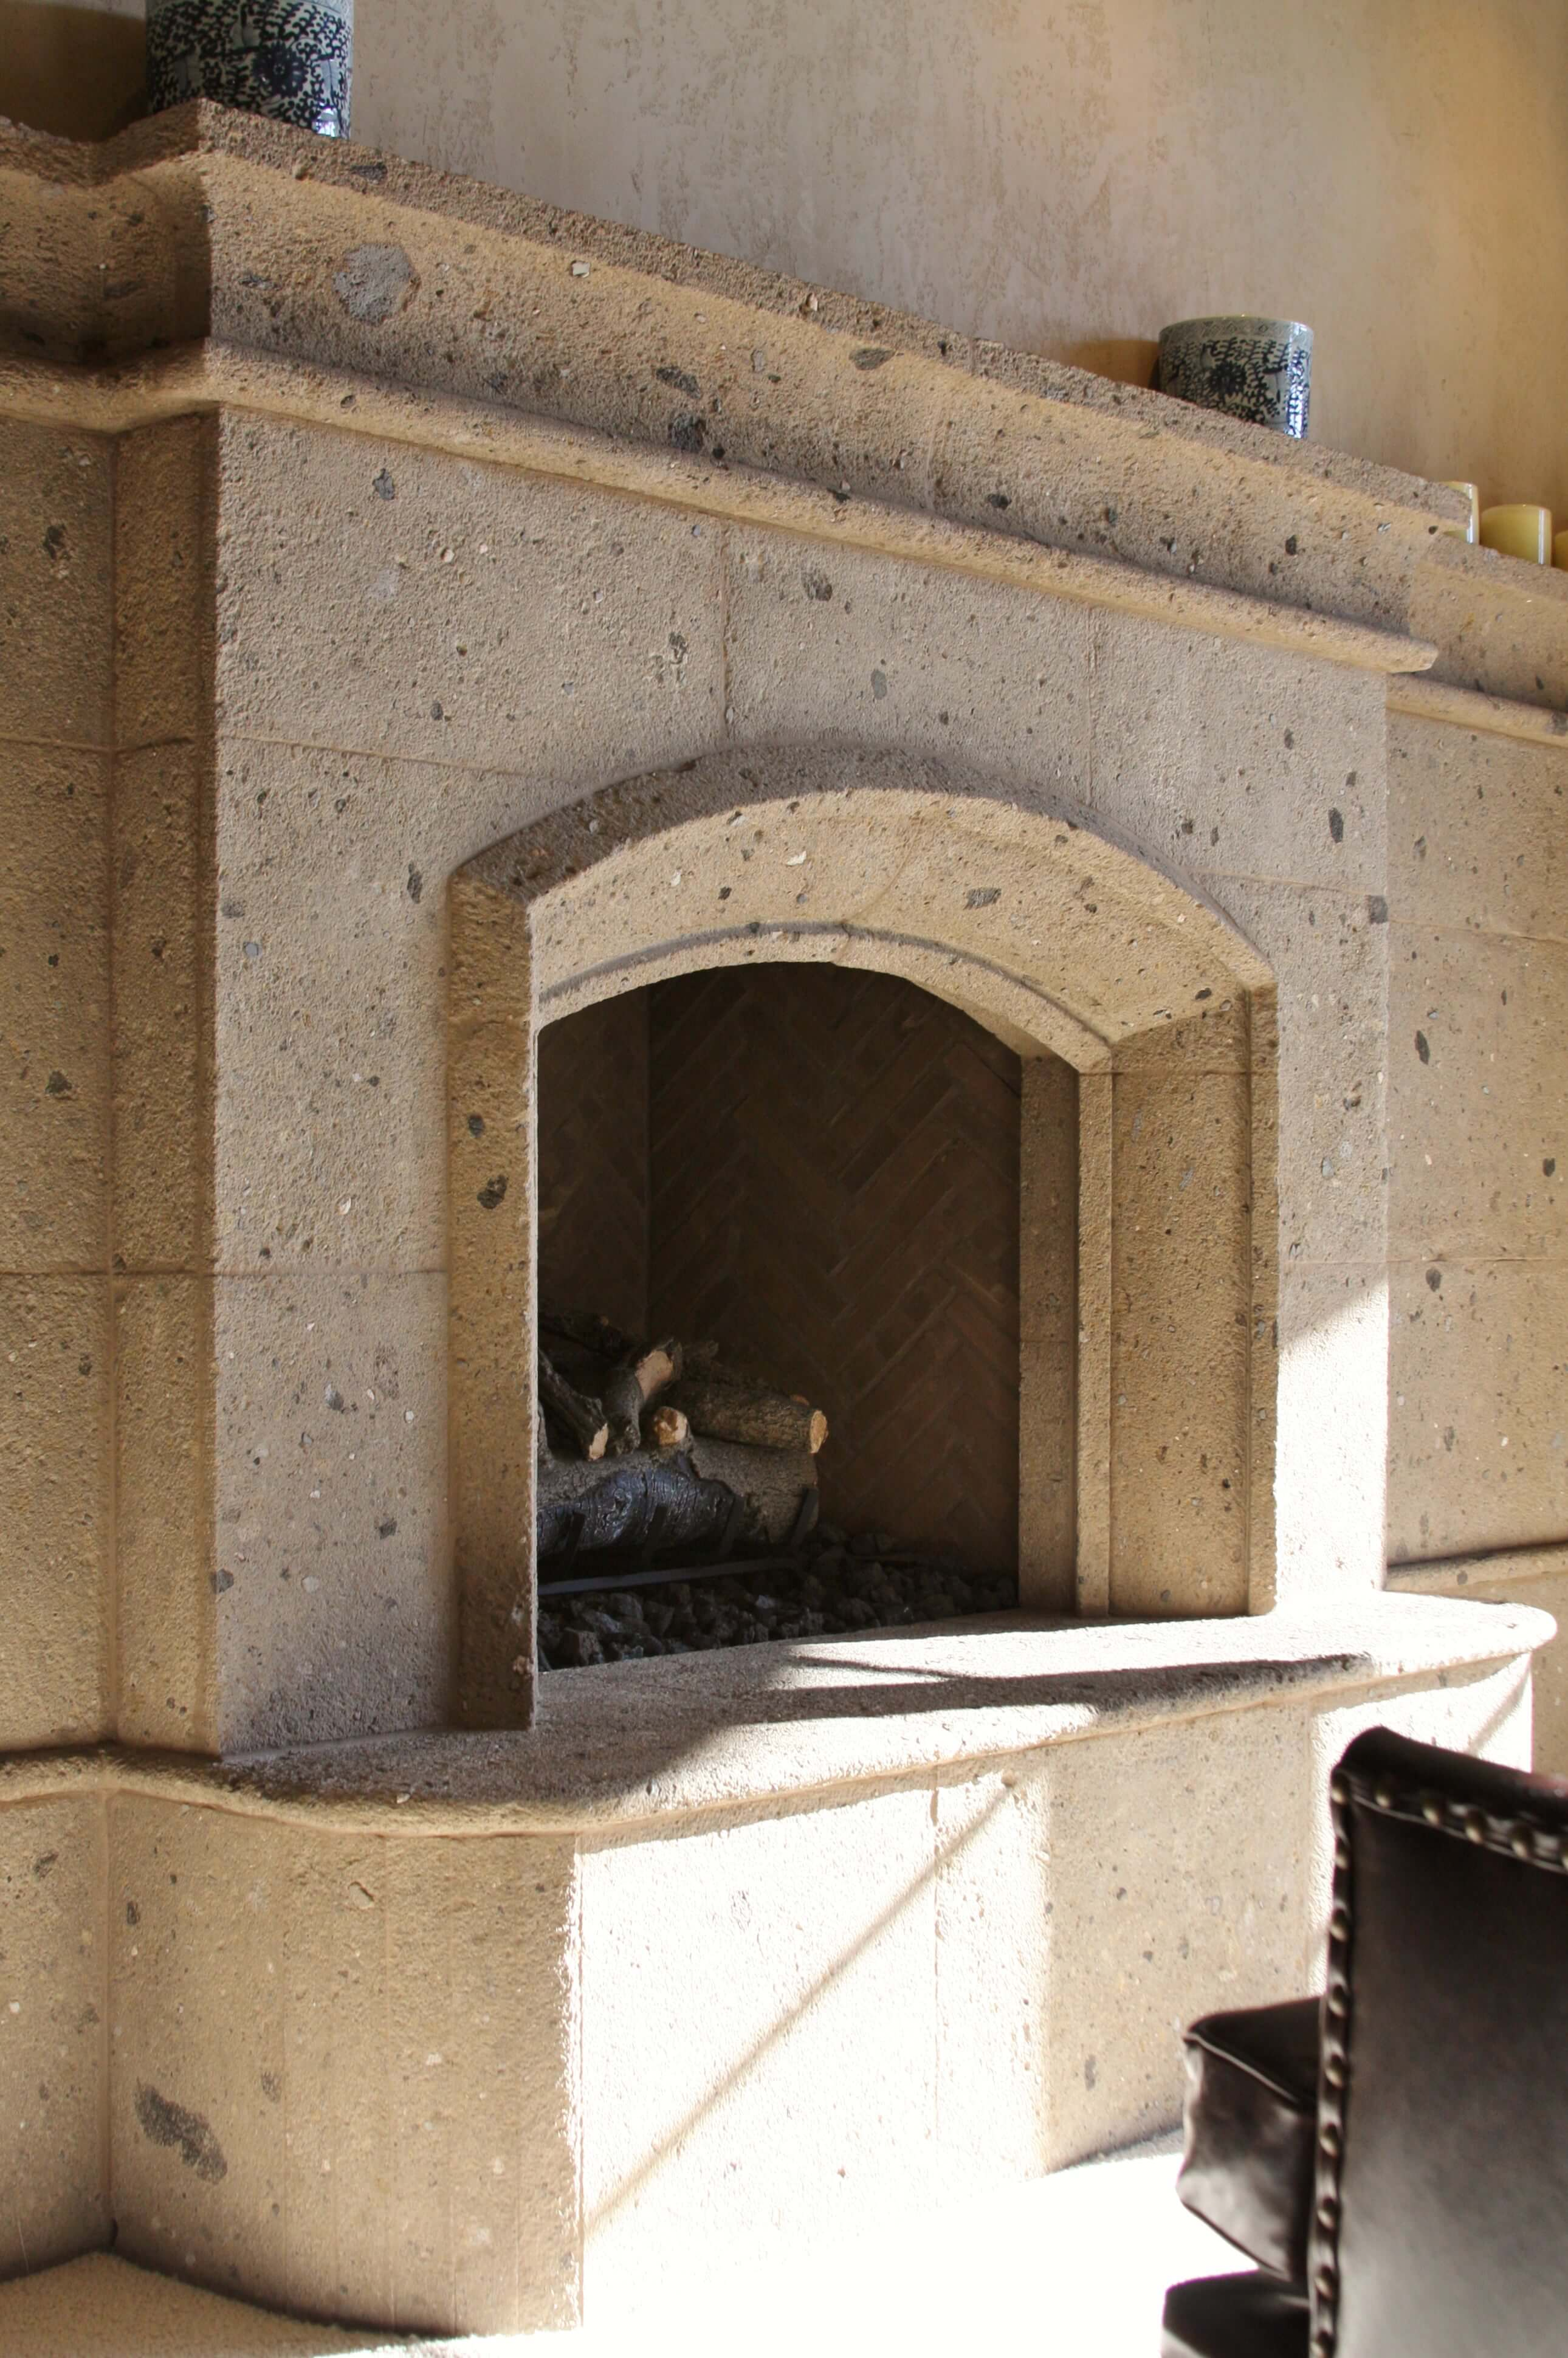 2-Southwest-Traditional-Fireplace-Surround-at-Master-Bedroom-in-Distressed-Tobacco-Cantera-Stone